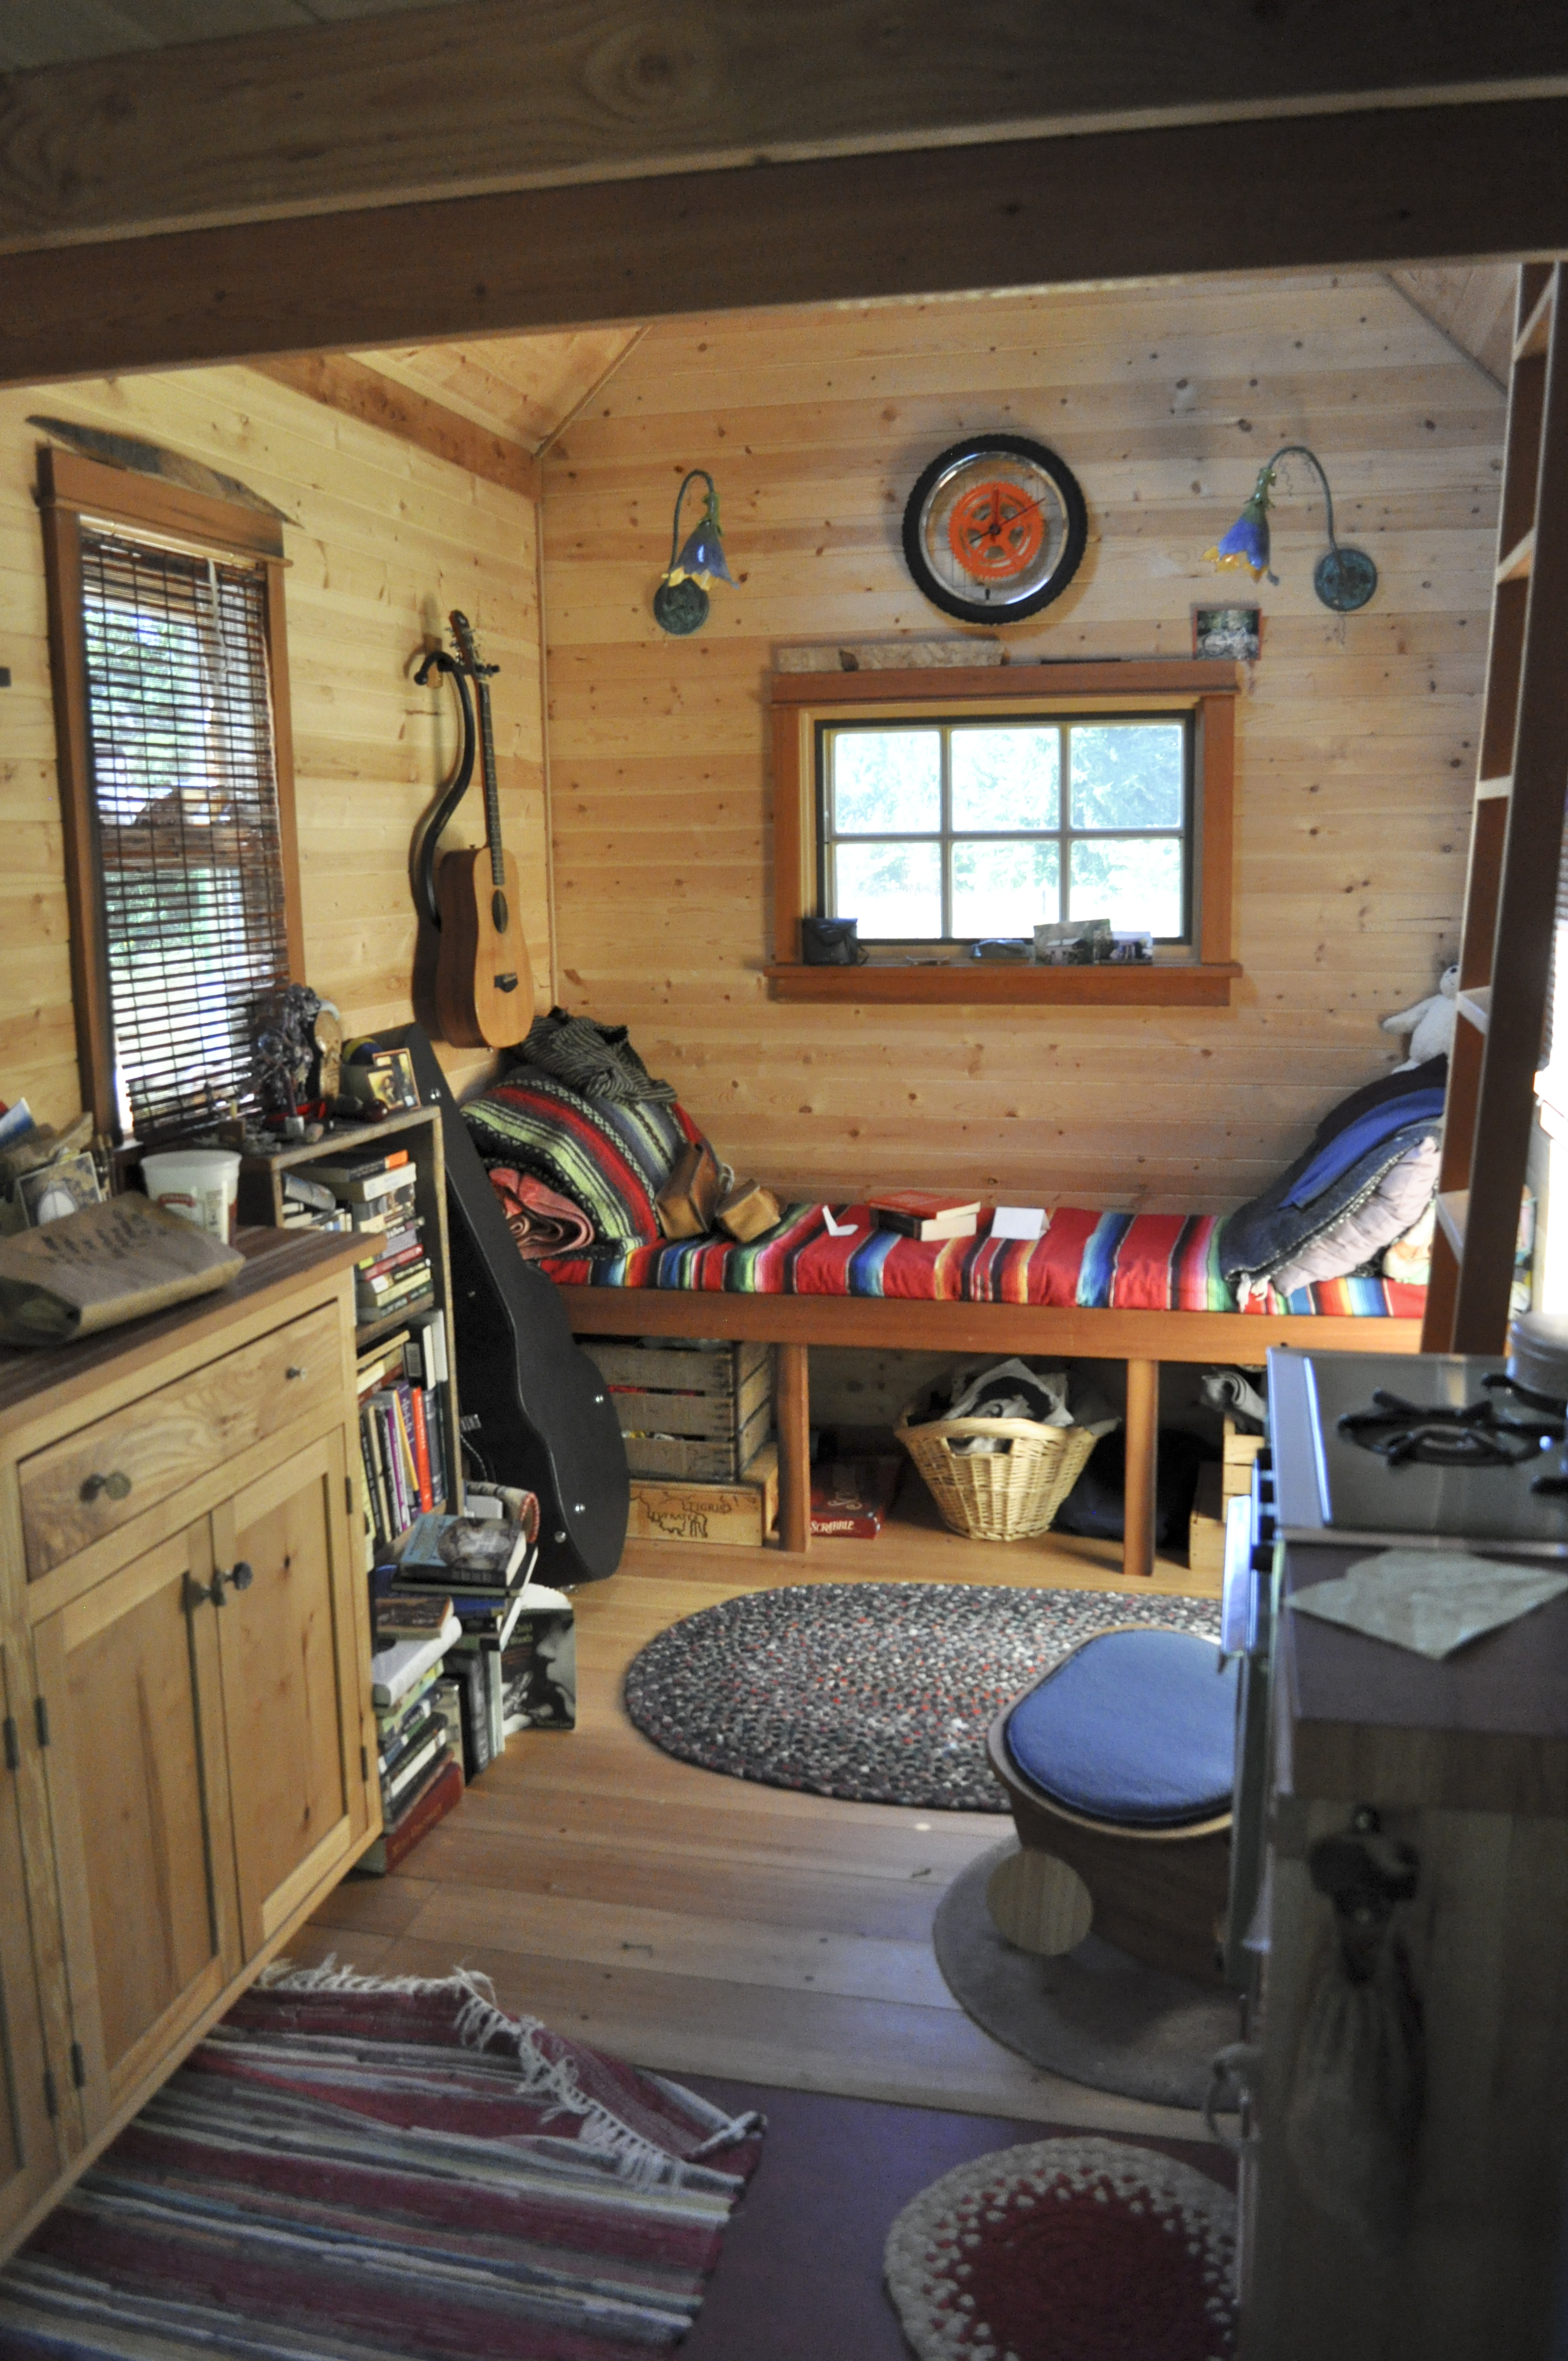 File:Tiny House Interior, Portland